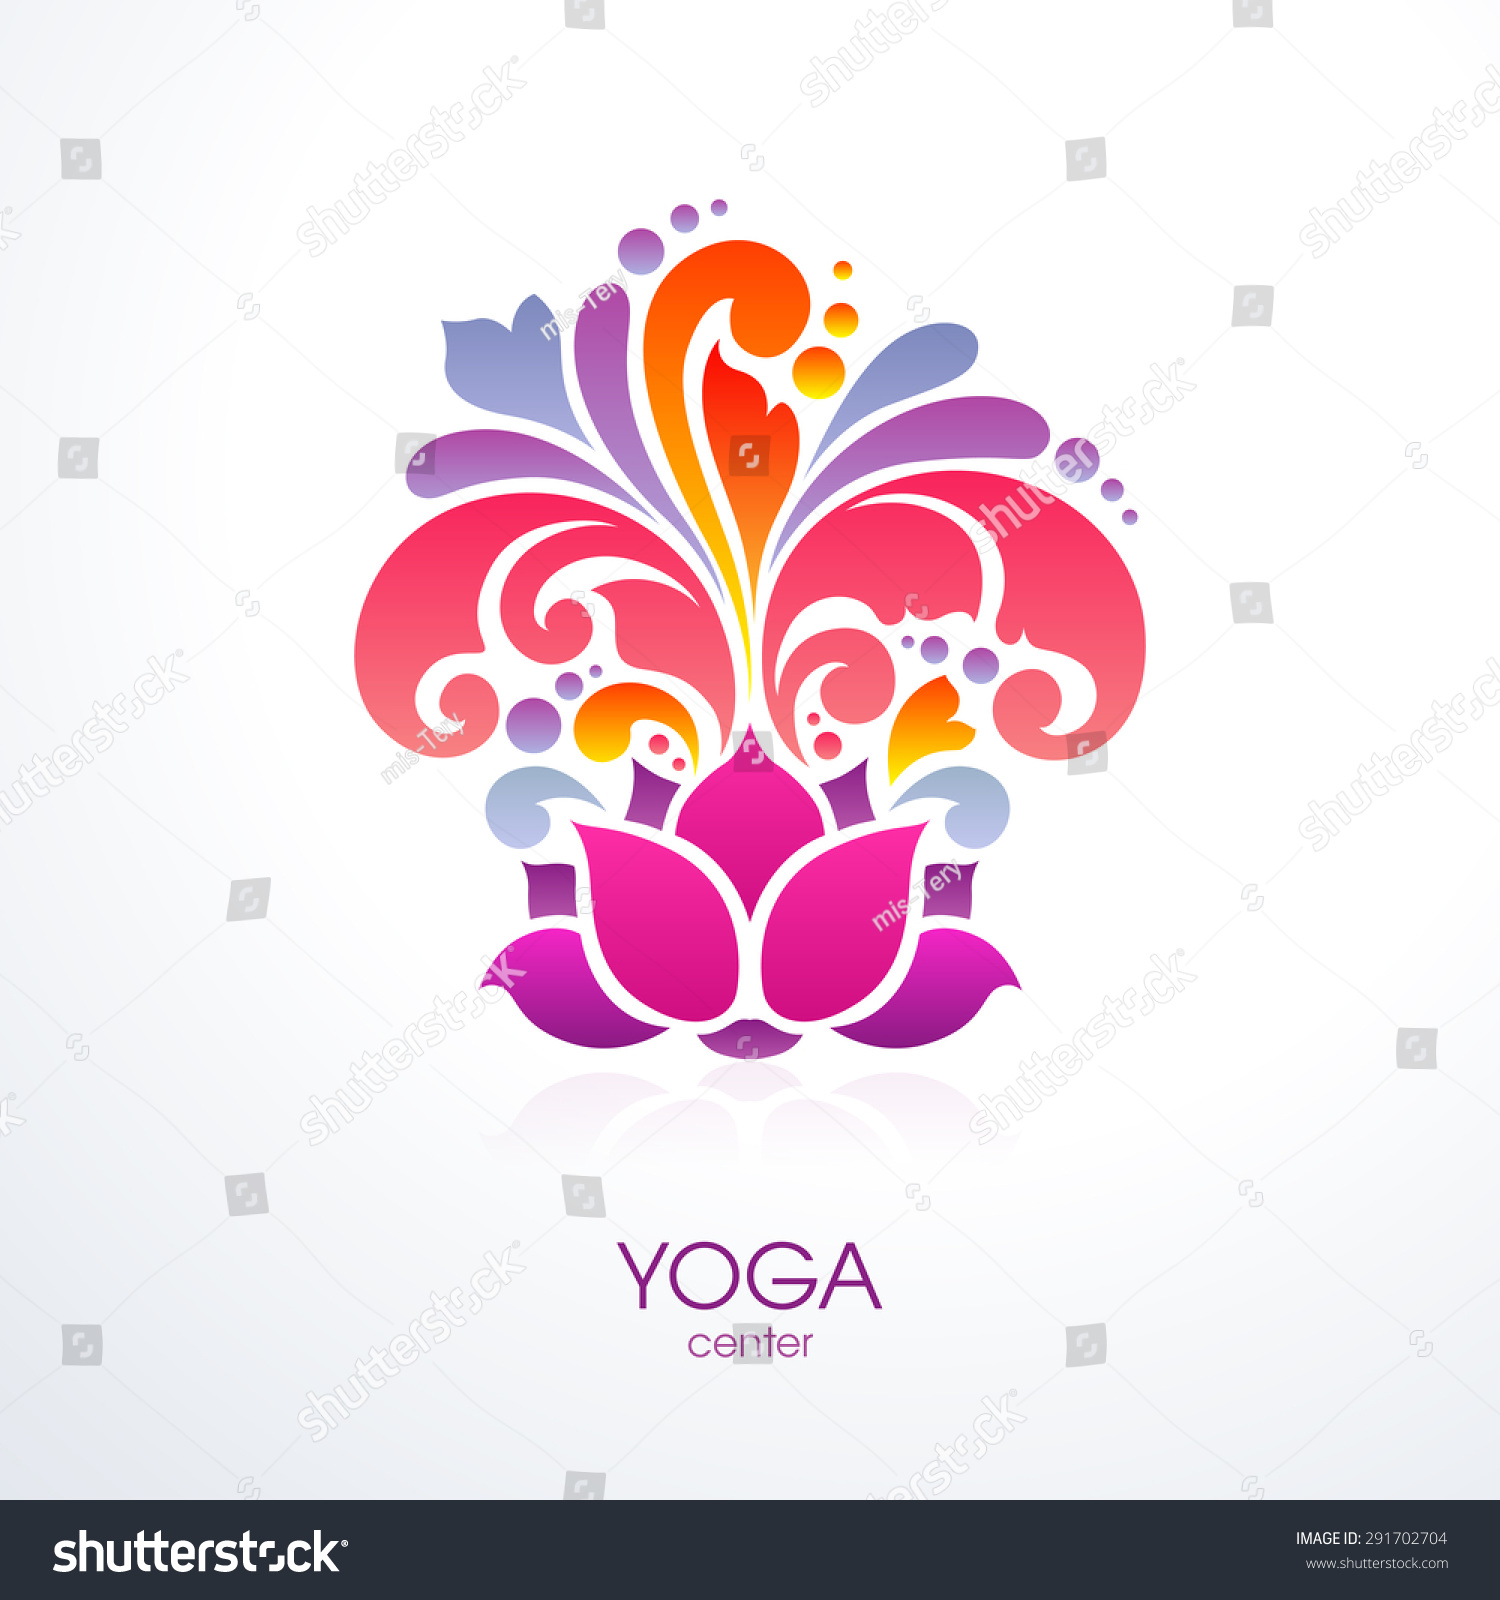 Abstract Flower Background With Decoration Elements For: Abstract Colorful Ornate Splash Yoga Background Decorative